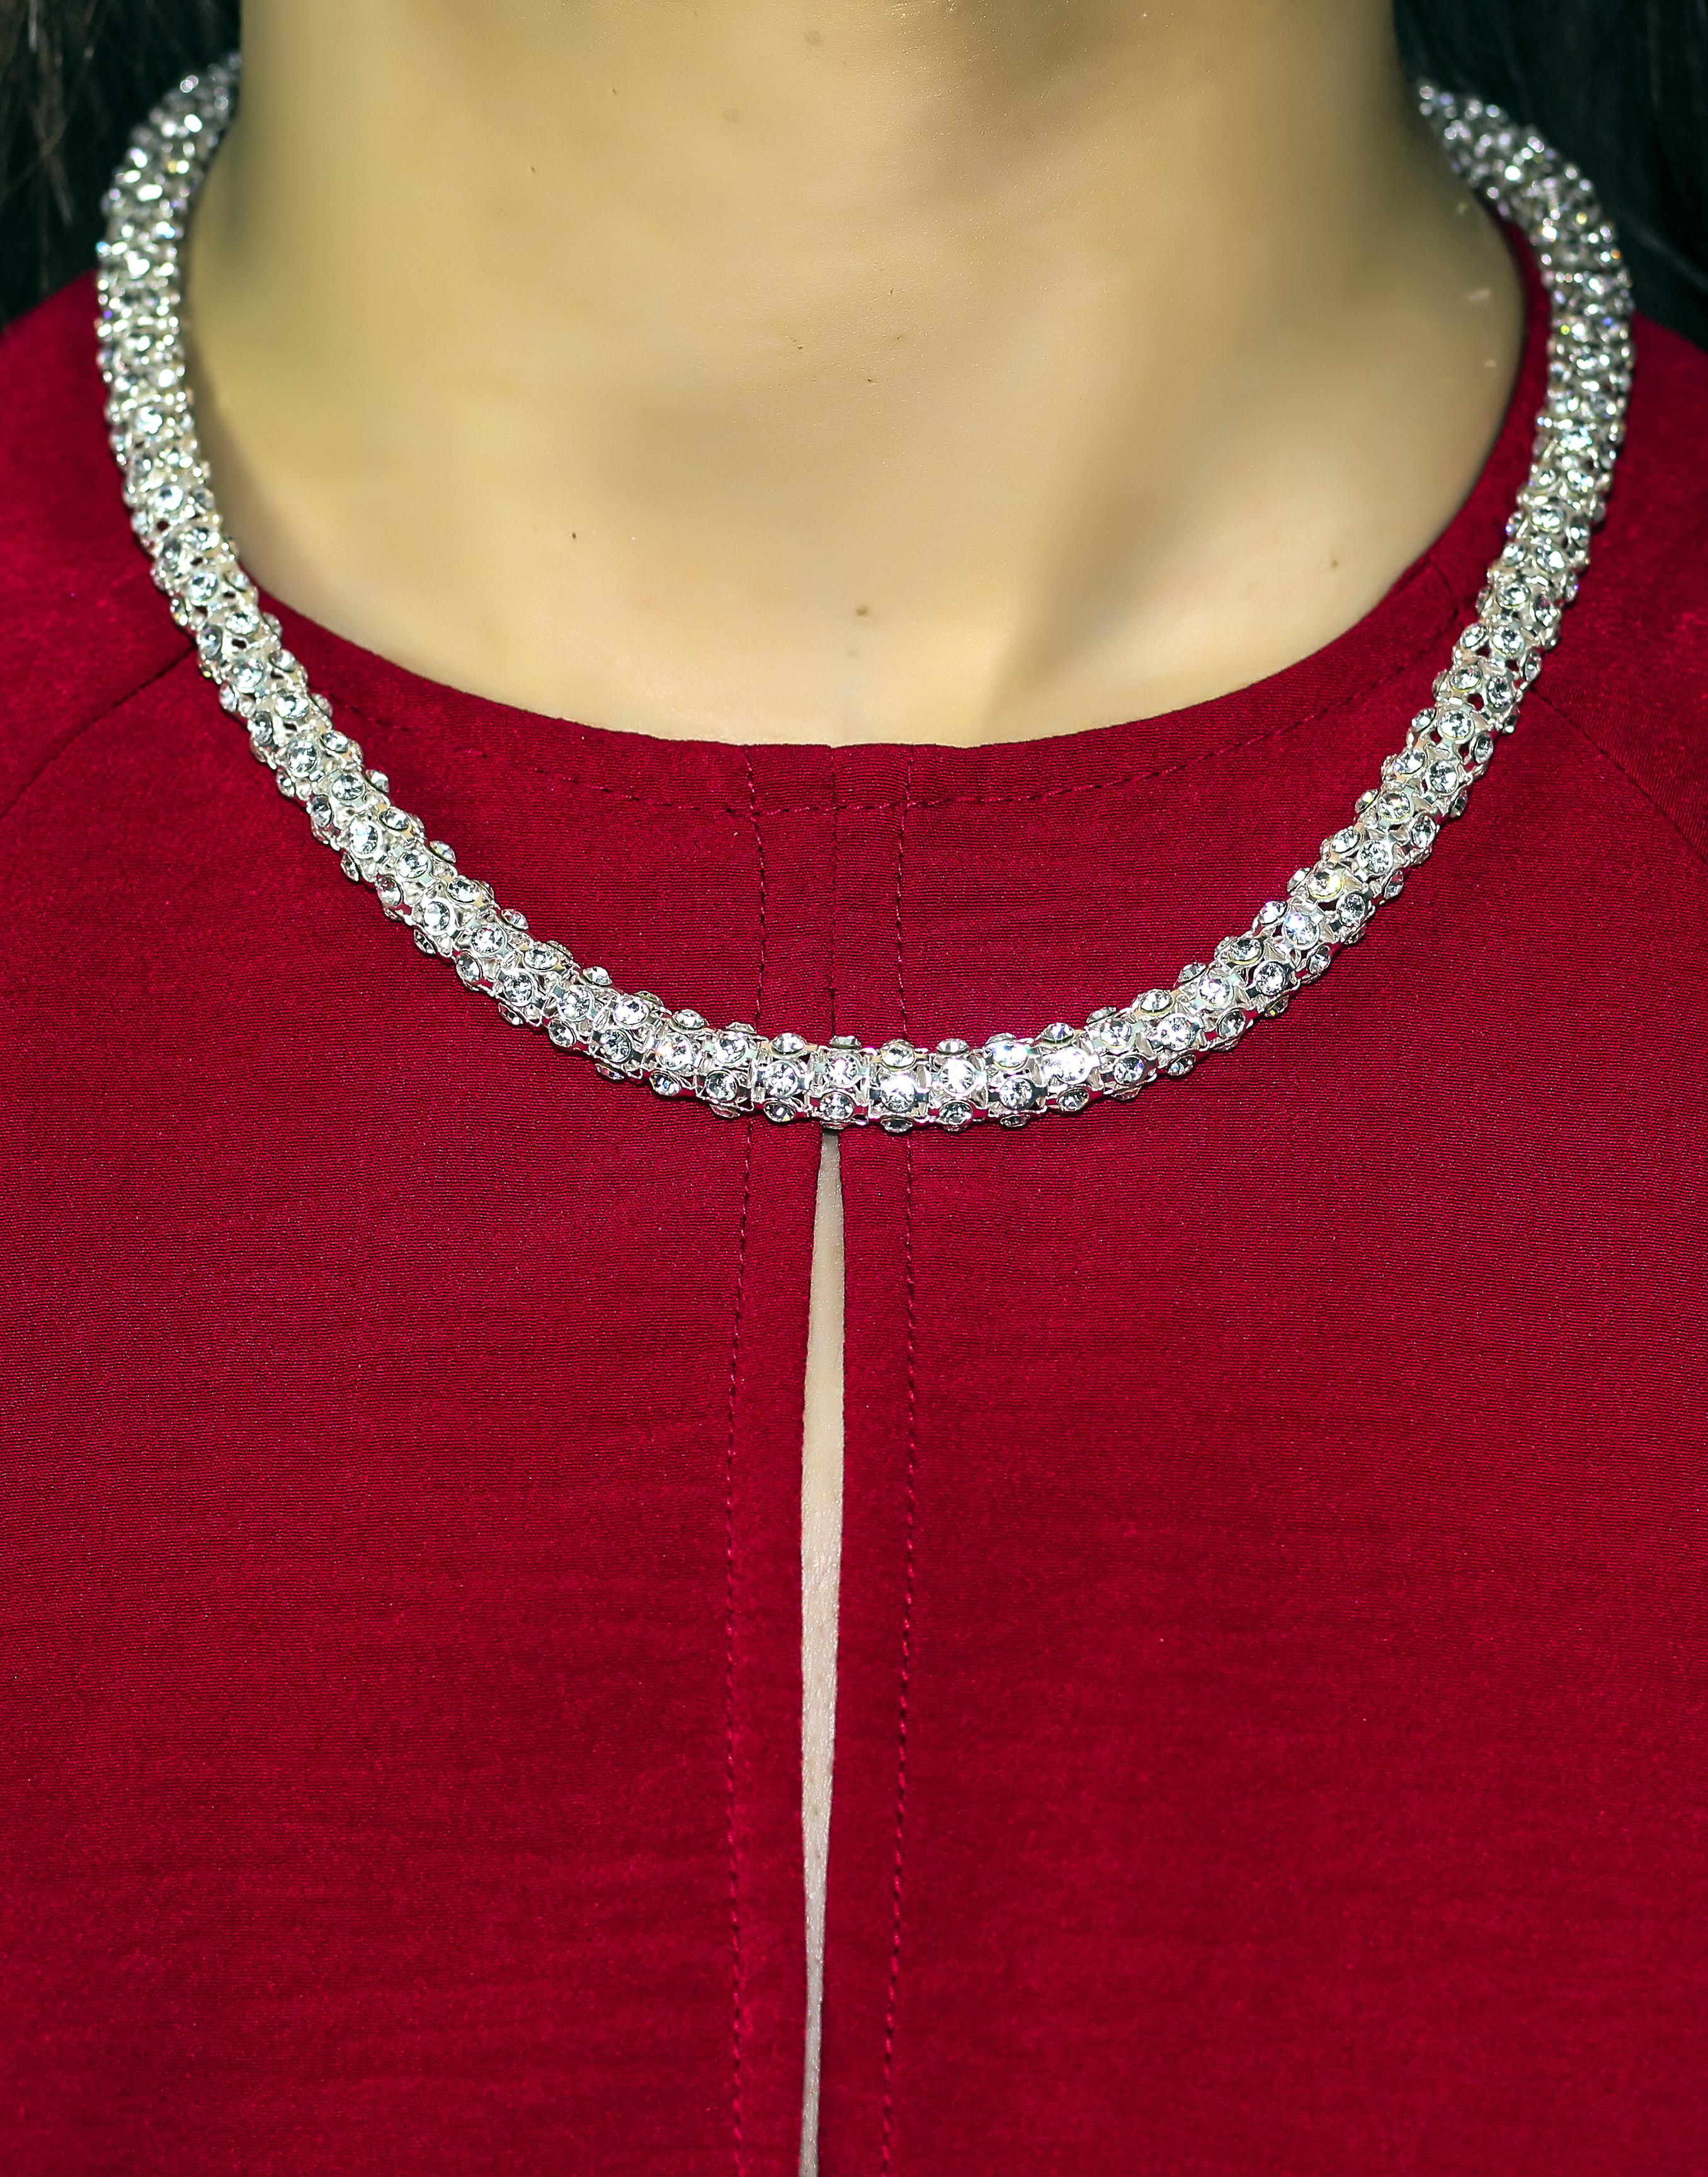 Silver Chain Necklace with Embedded Crystals